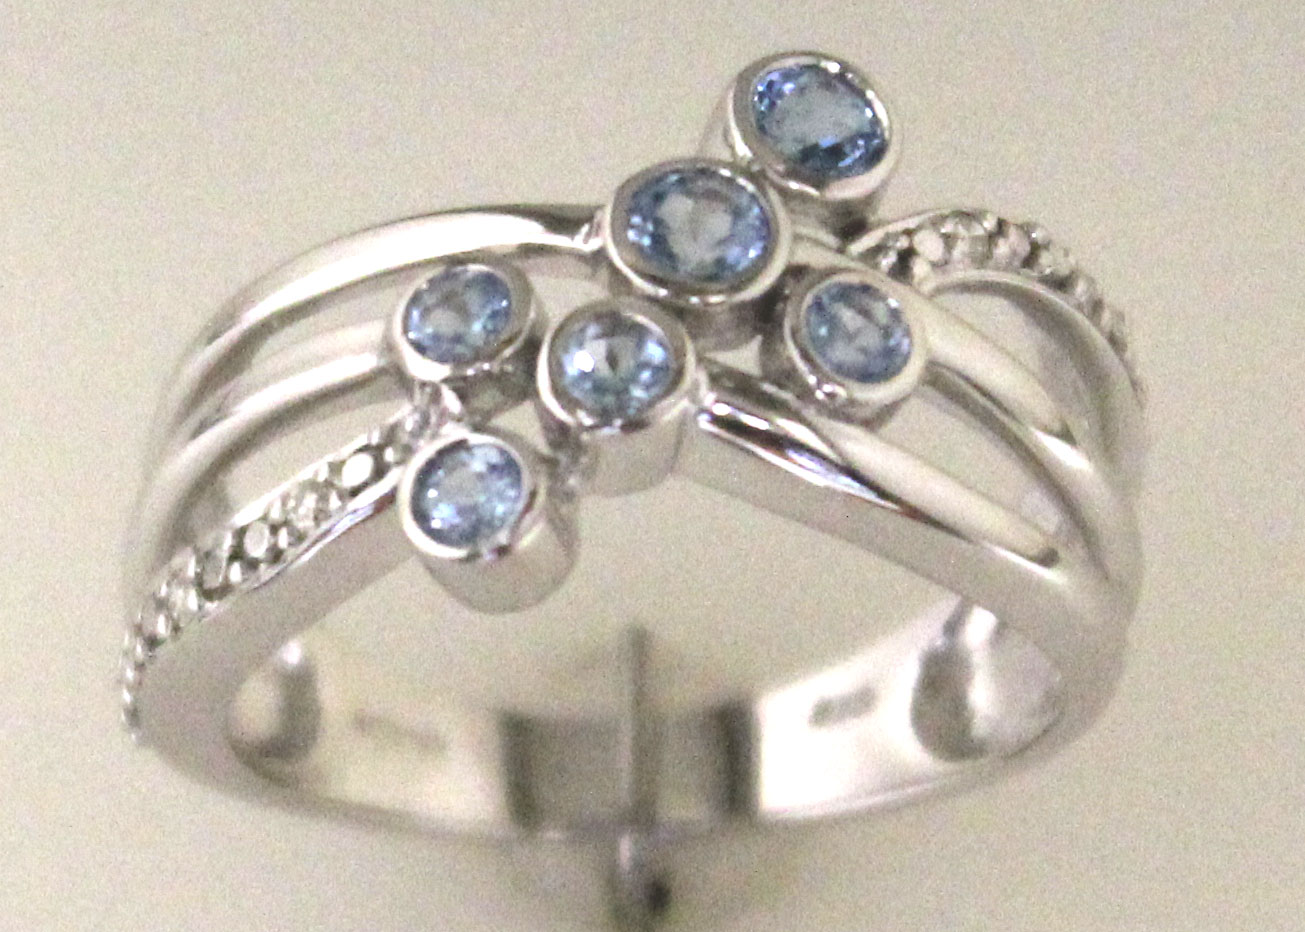 Lot 54 - 9ct White Gold Fancy Cluster Diamond And Blue Topaz Ring